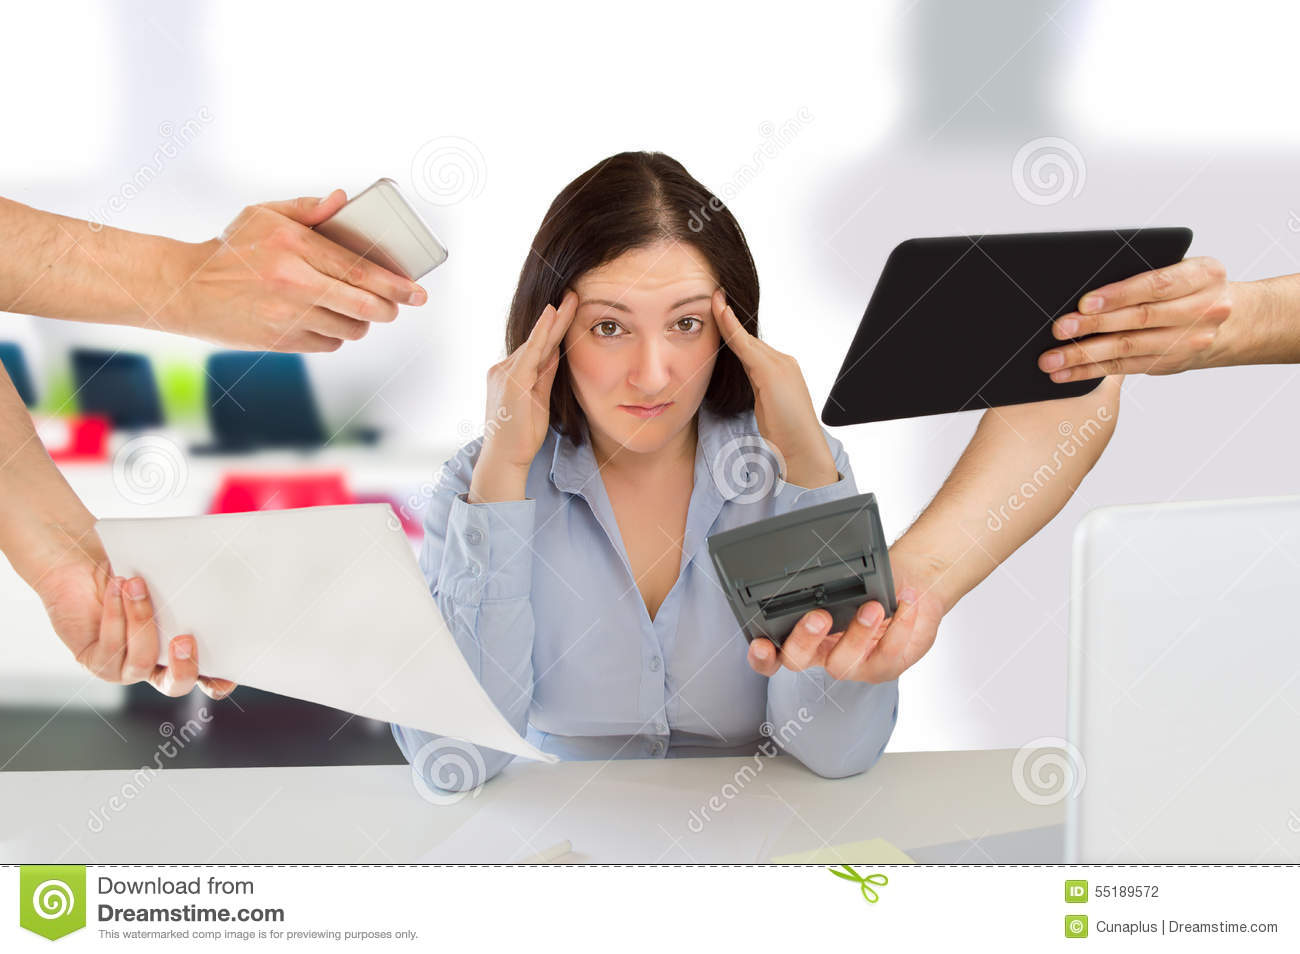 Job Stress stock photo. Image of holding, adult, desk ...